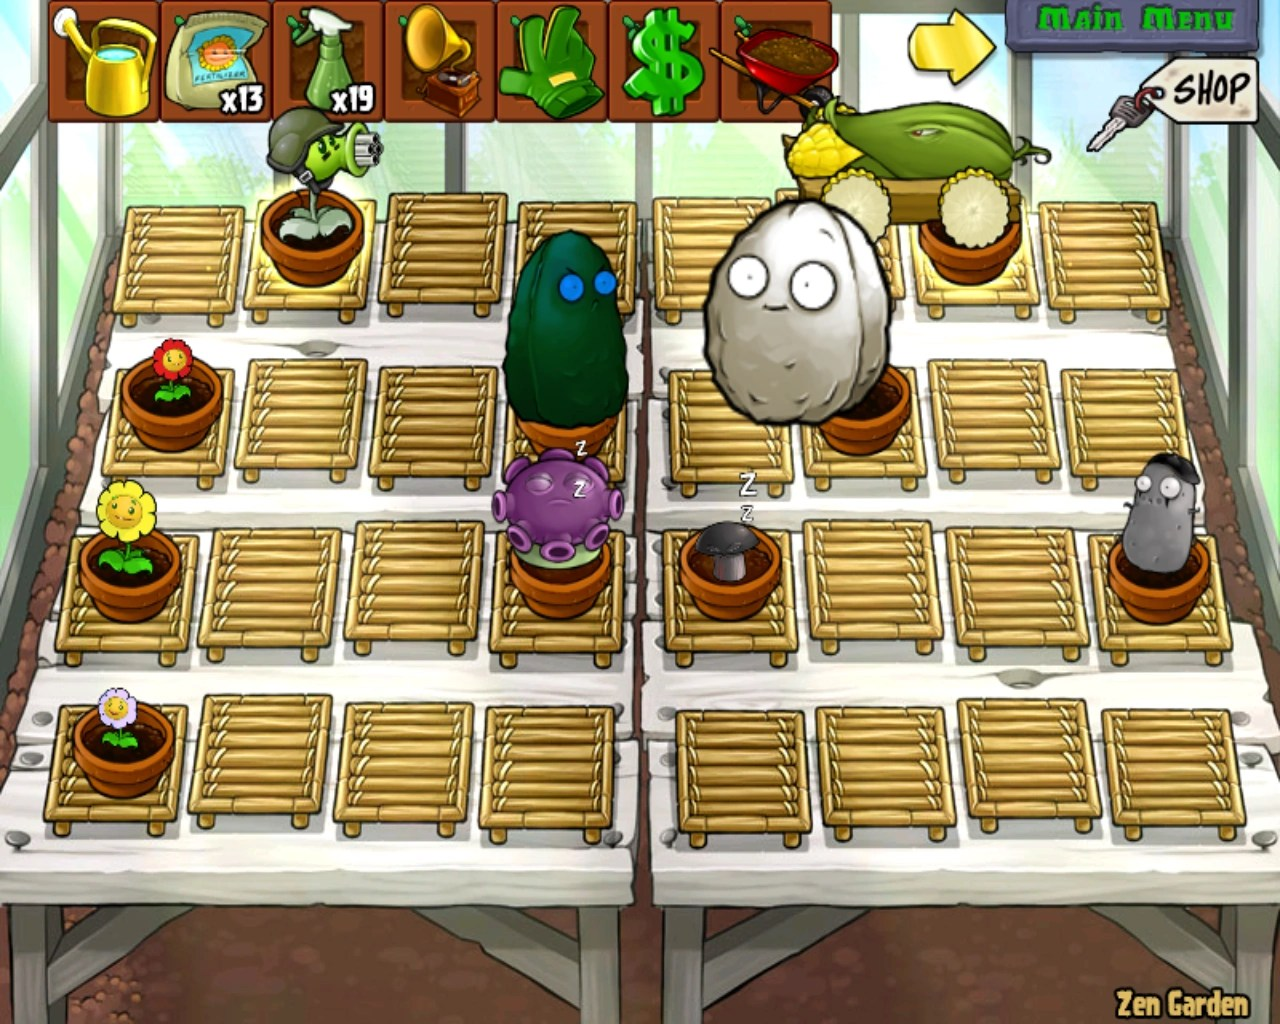 Zen Garten Plants Vs Zombies Image Zen Garden Png Plants Vs Zombies Character